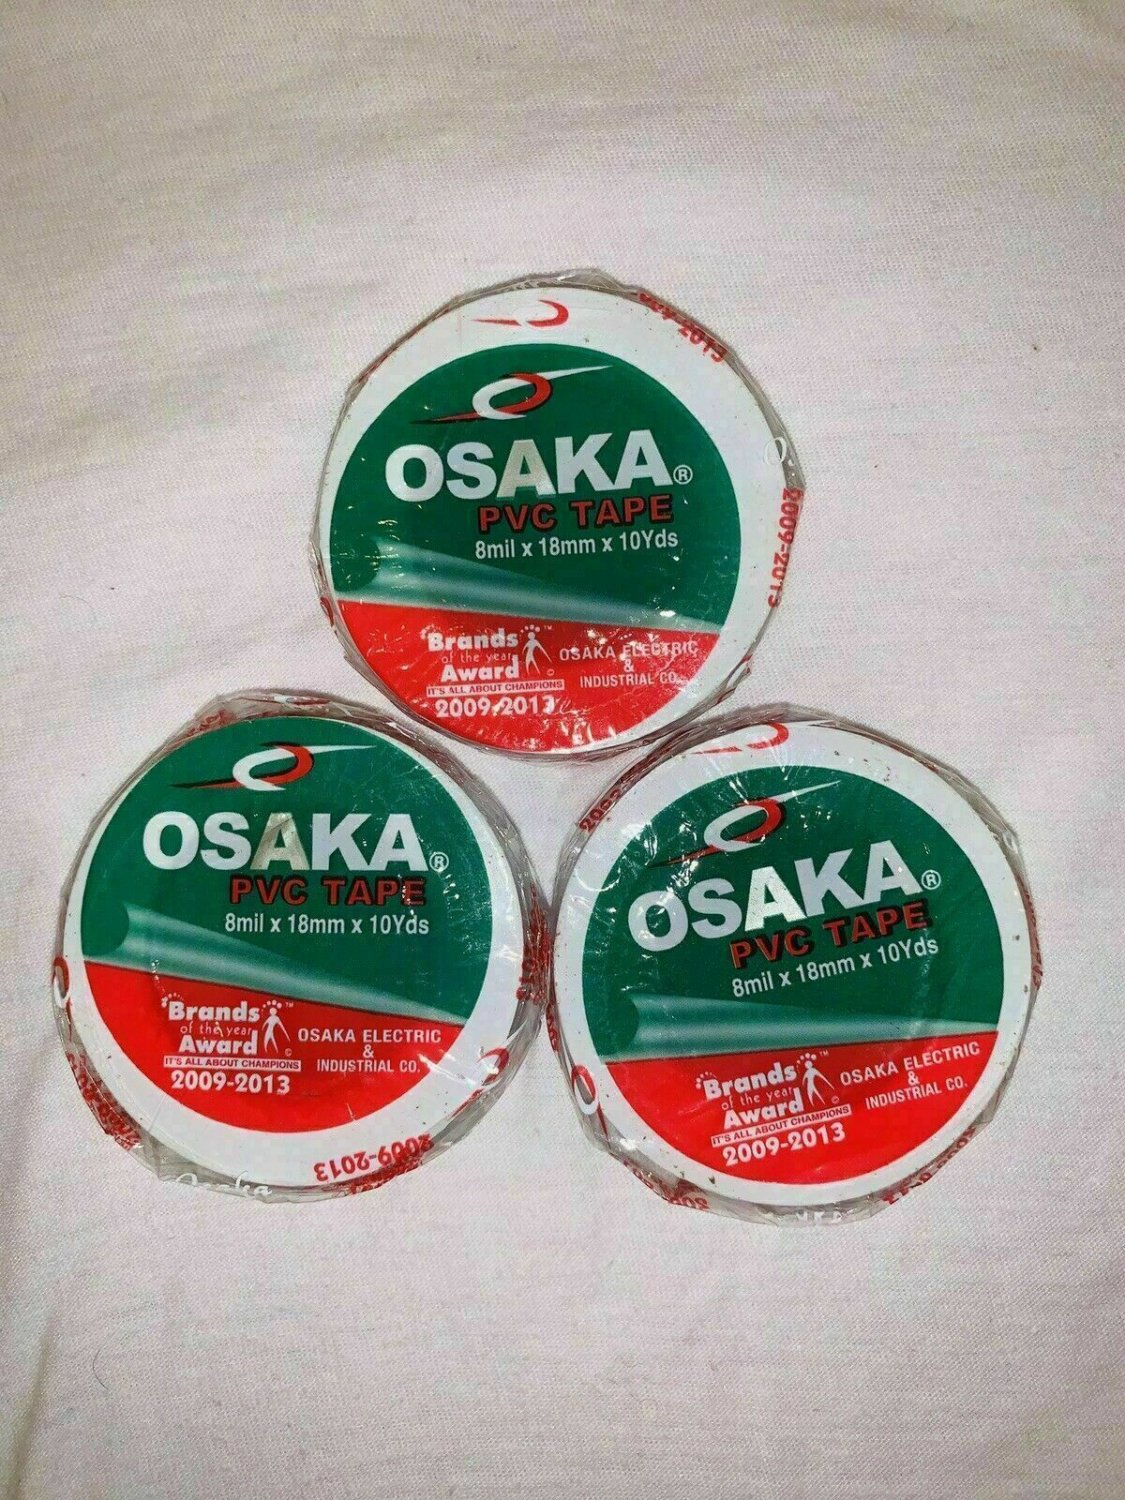 Osaka PVC Tape Roll Cricket Tennis White Packet 8 Mil x 18mm x 10yds Pack of 10